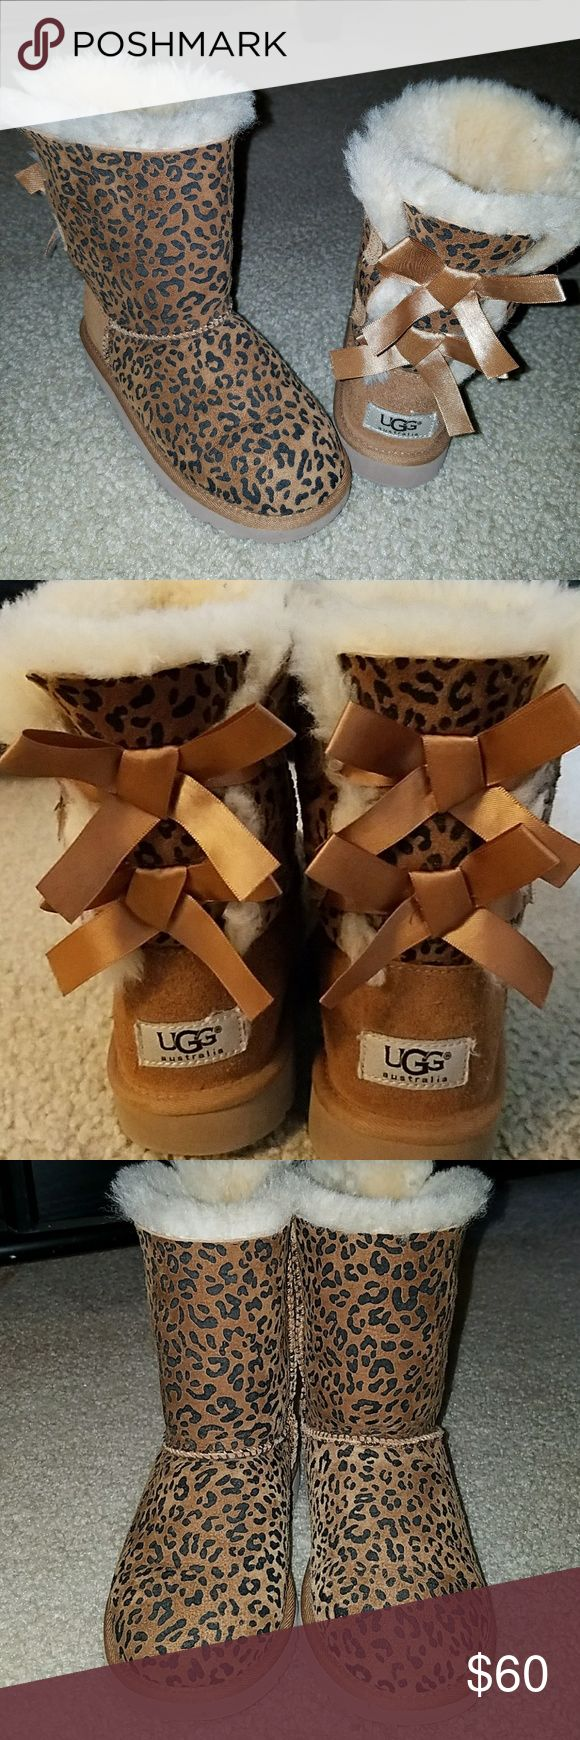 Authentic Cheetah Print Bailey Bow Uggs Authentic Cheetah Print Bailey Bow Uggs. Excellent Condition. UGG Shoes Boots